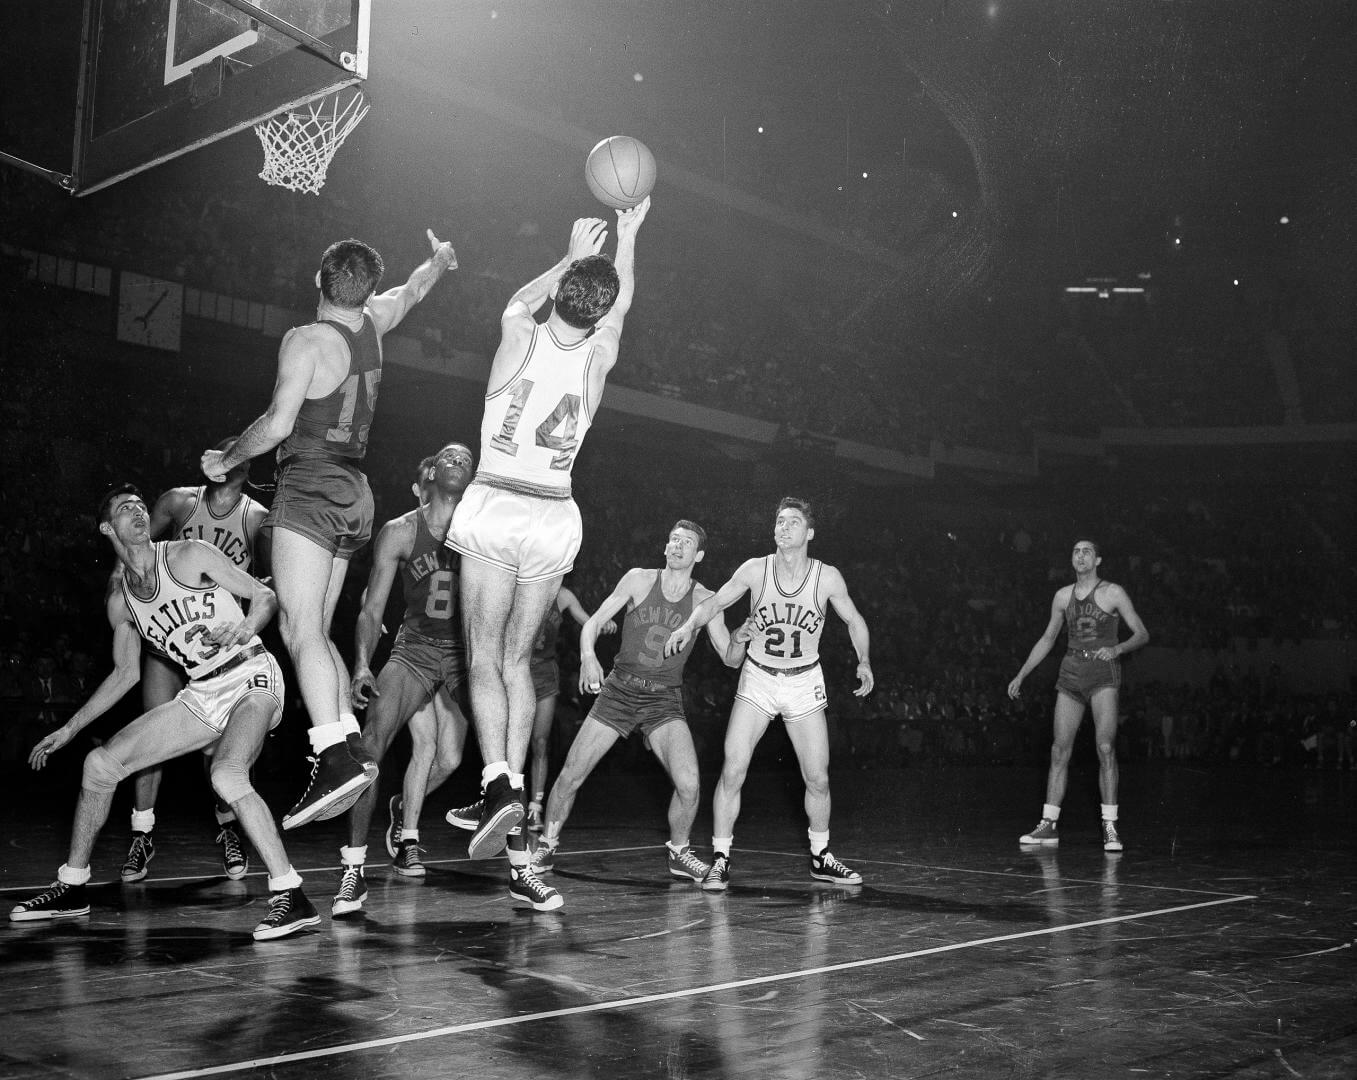 Bob Cousy (14) of the Boston Celtics takes a rebound off the backboard after an attempted basket by Dick McGuire (15) of the New York Knickerbockers in the fourth quarter of their NBA playoff game at the Boston Garden in Boston, Mass., March 26, 1953. Other identifiable players are: Bob Harris (13) and Bill Sharman (21) of the Celtics: Nat Clifton (8) and Ernie Vandeweghe (9) both of the Knicks. The Celtics won 86-70. (AP Photo/Bill Chaplis)